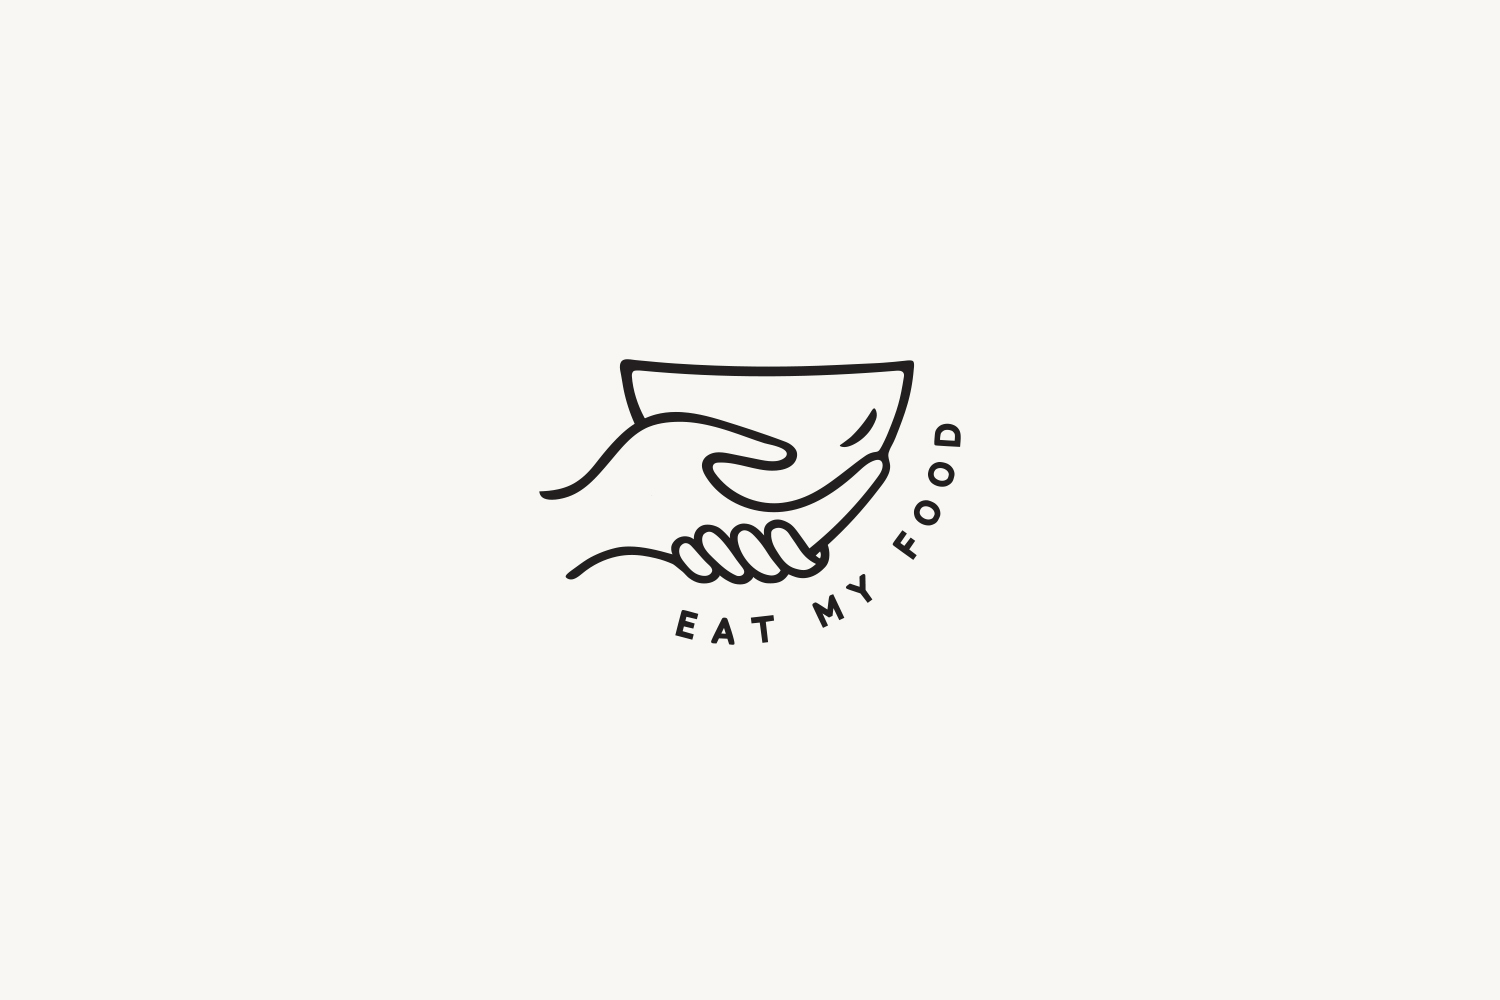 20.Becca_Allen_Eat_My_Food_Logo.jpg